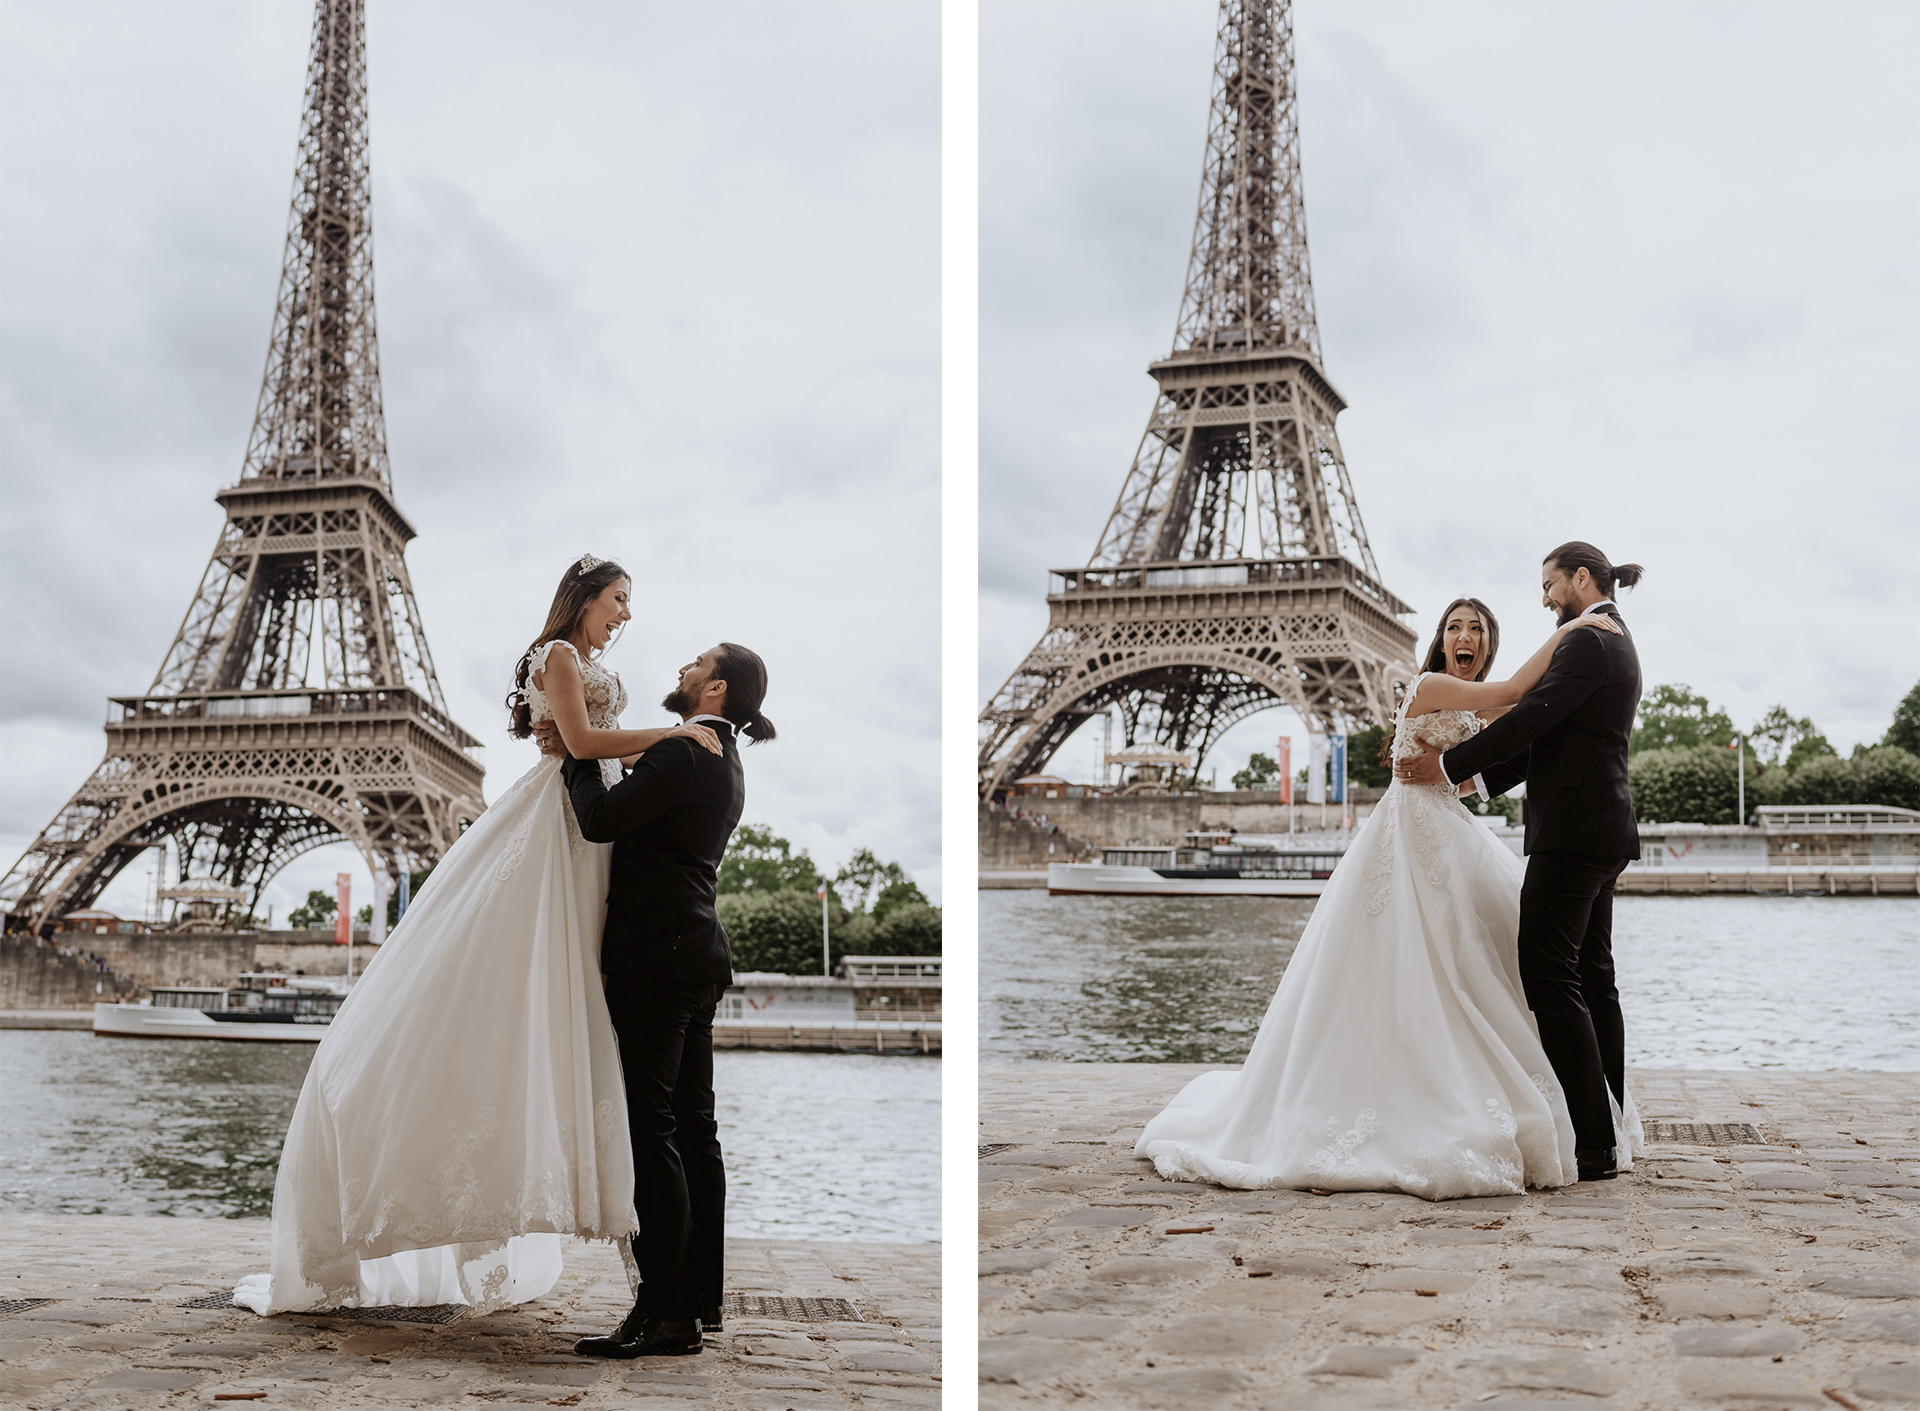 Eiffel tower photo shoot